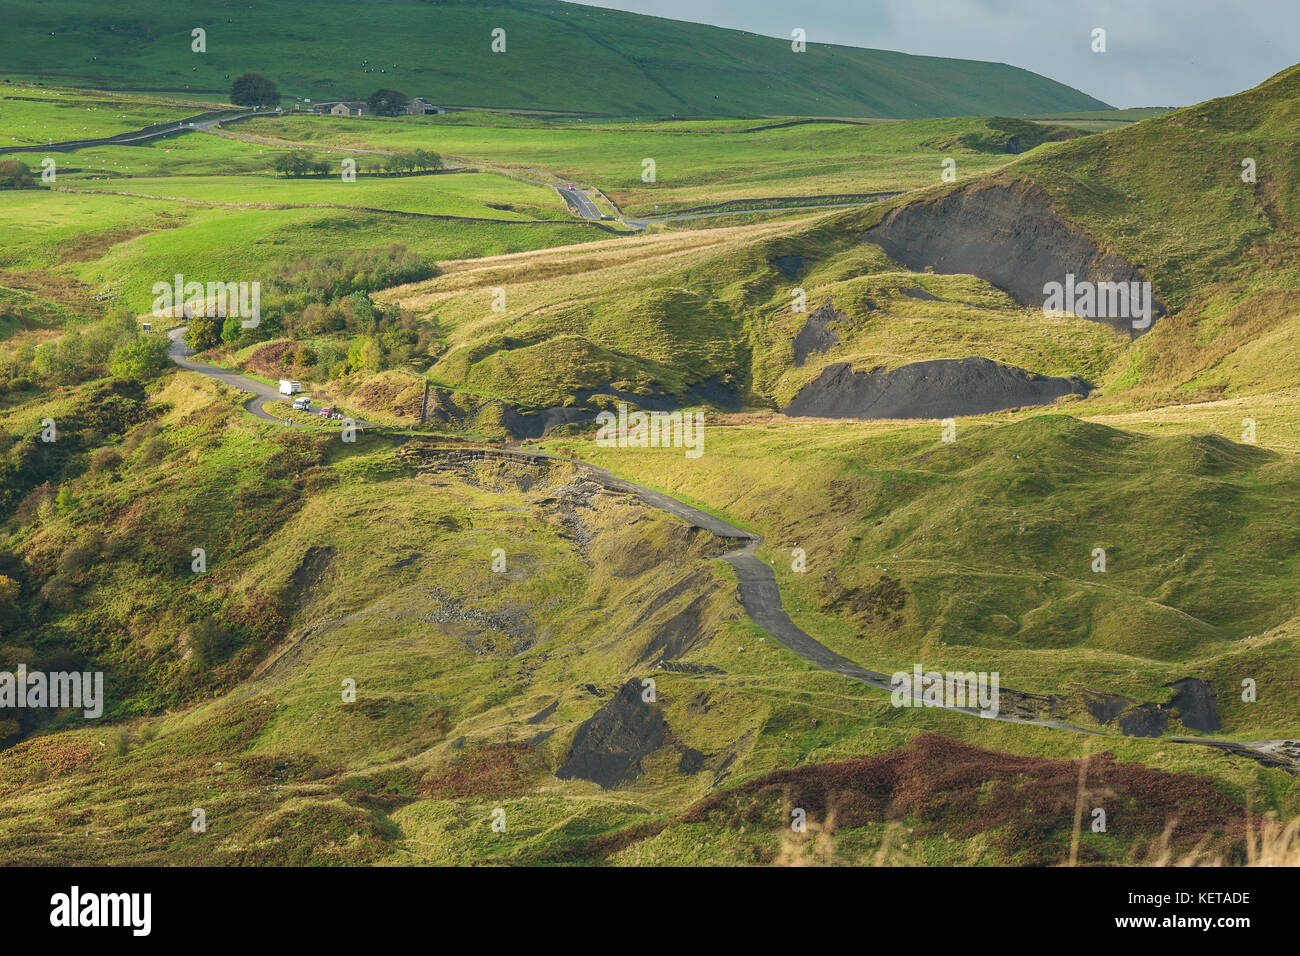 The collapsed Road at Mam Tor. - Stock Image